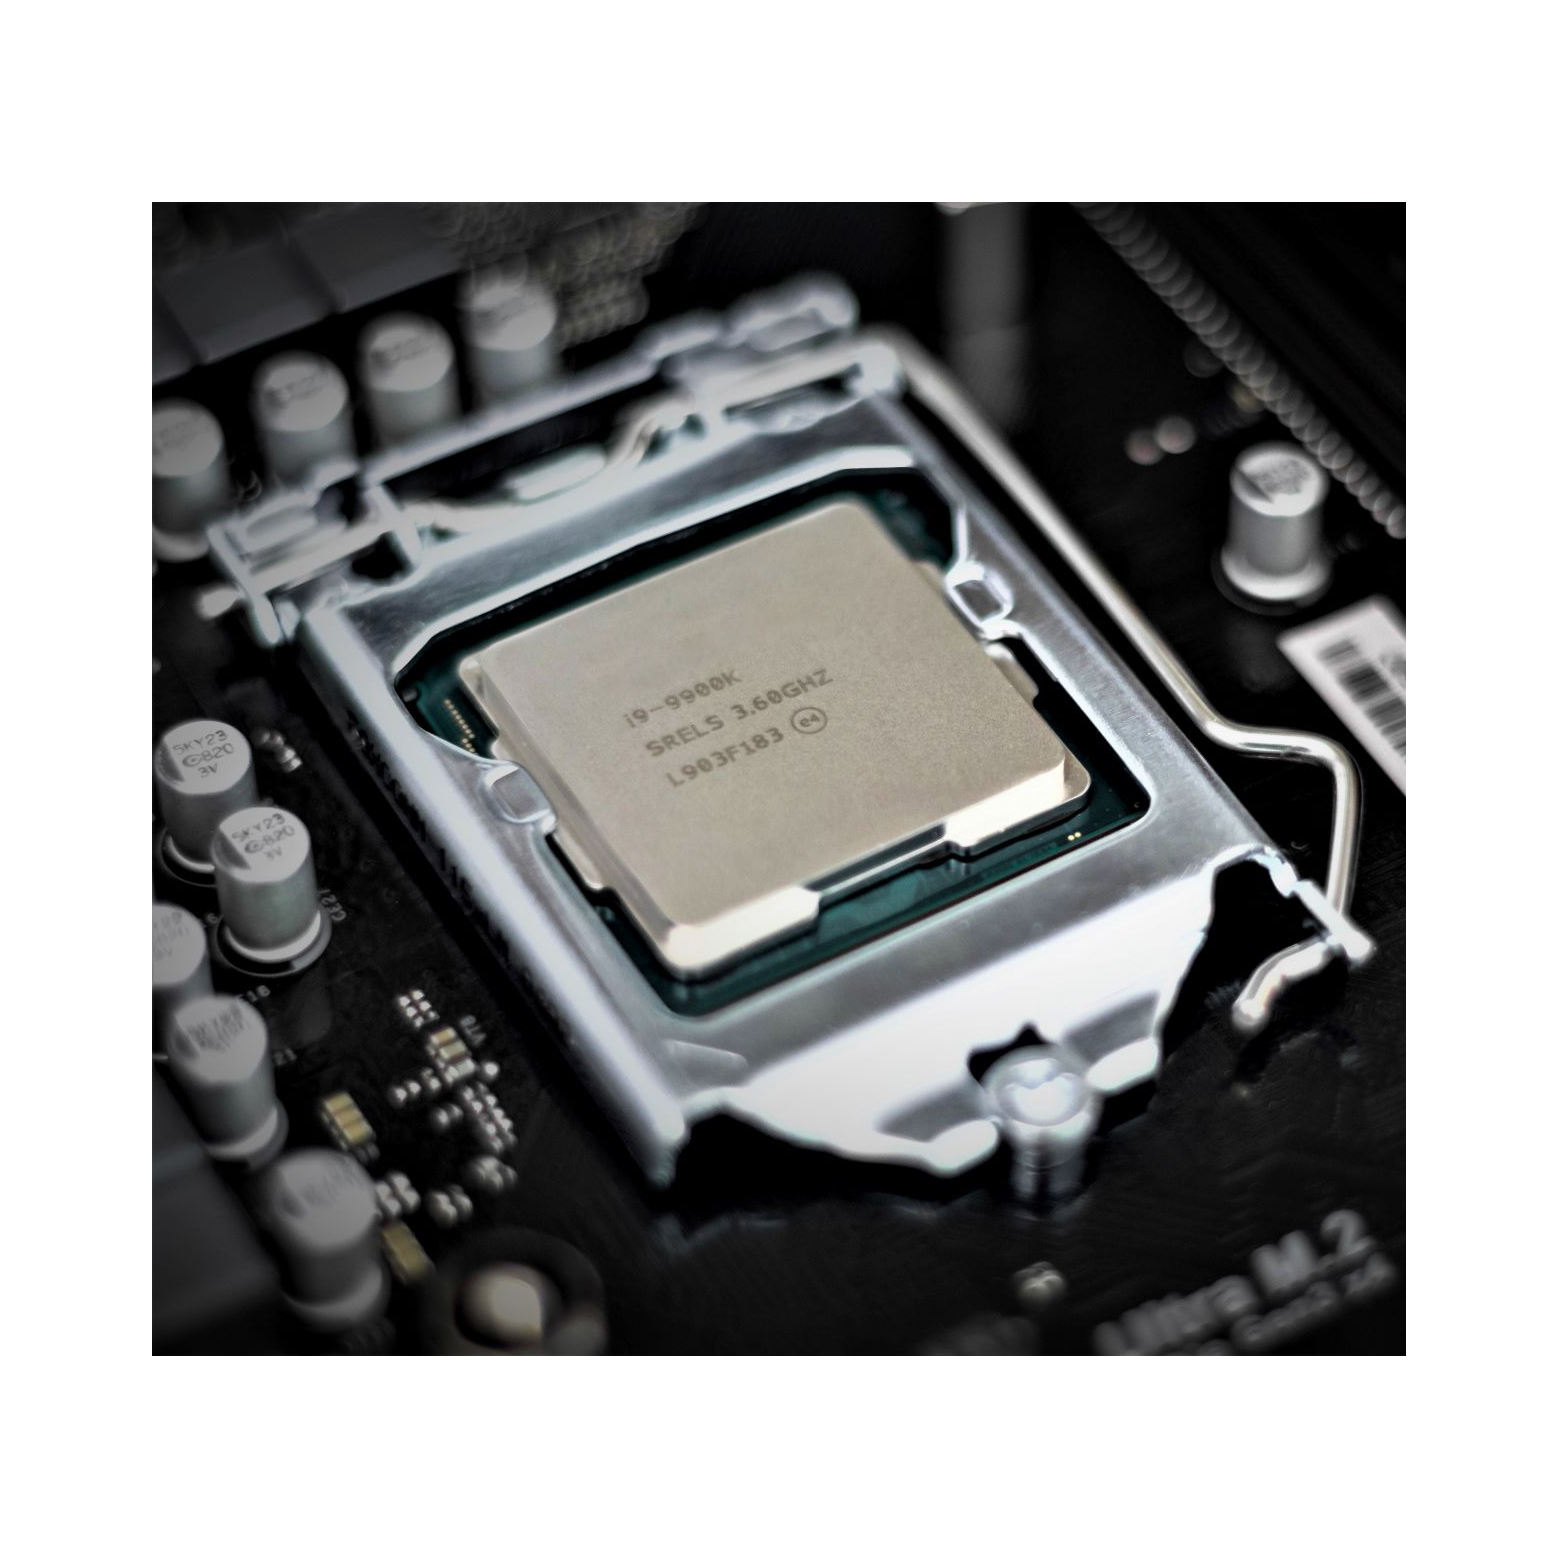 E5-2673V4 20 Cores 40 Threads 2.3GHz 2699V3 2696V3 2680V4 Original Server CPU Processor E5 2673v4